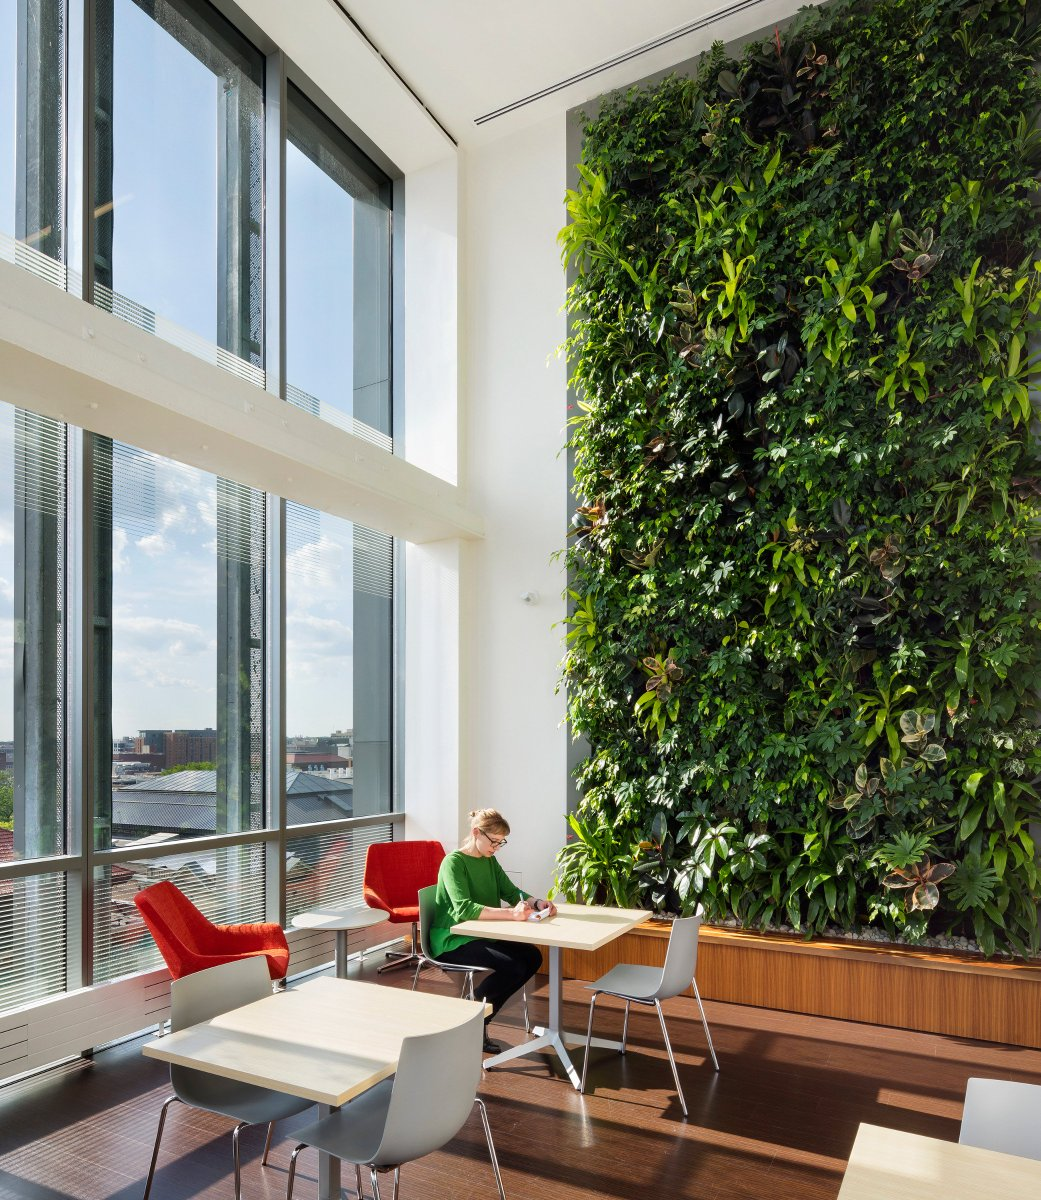 Diamond Schmitt در توییتر Our 5th Green Wall Award From Green Roofs For Healthy Cities Grhcna Today For Weiser Hall Umich In Ann Arbor This Vertical Arbor Has 4 Double Height Living Walls